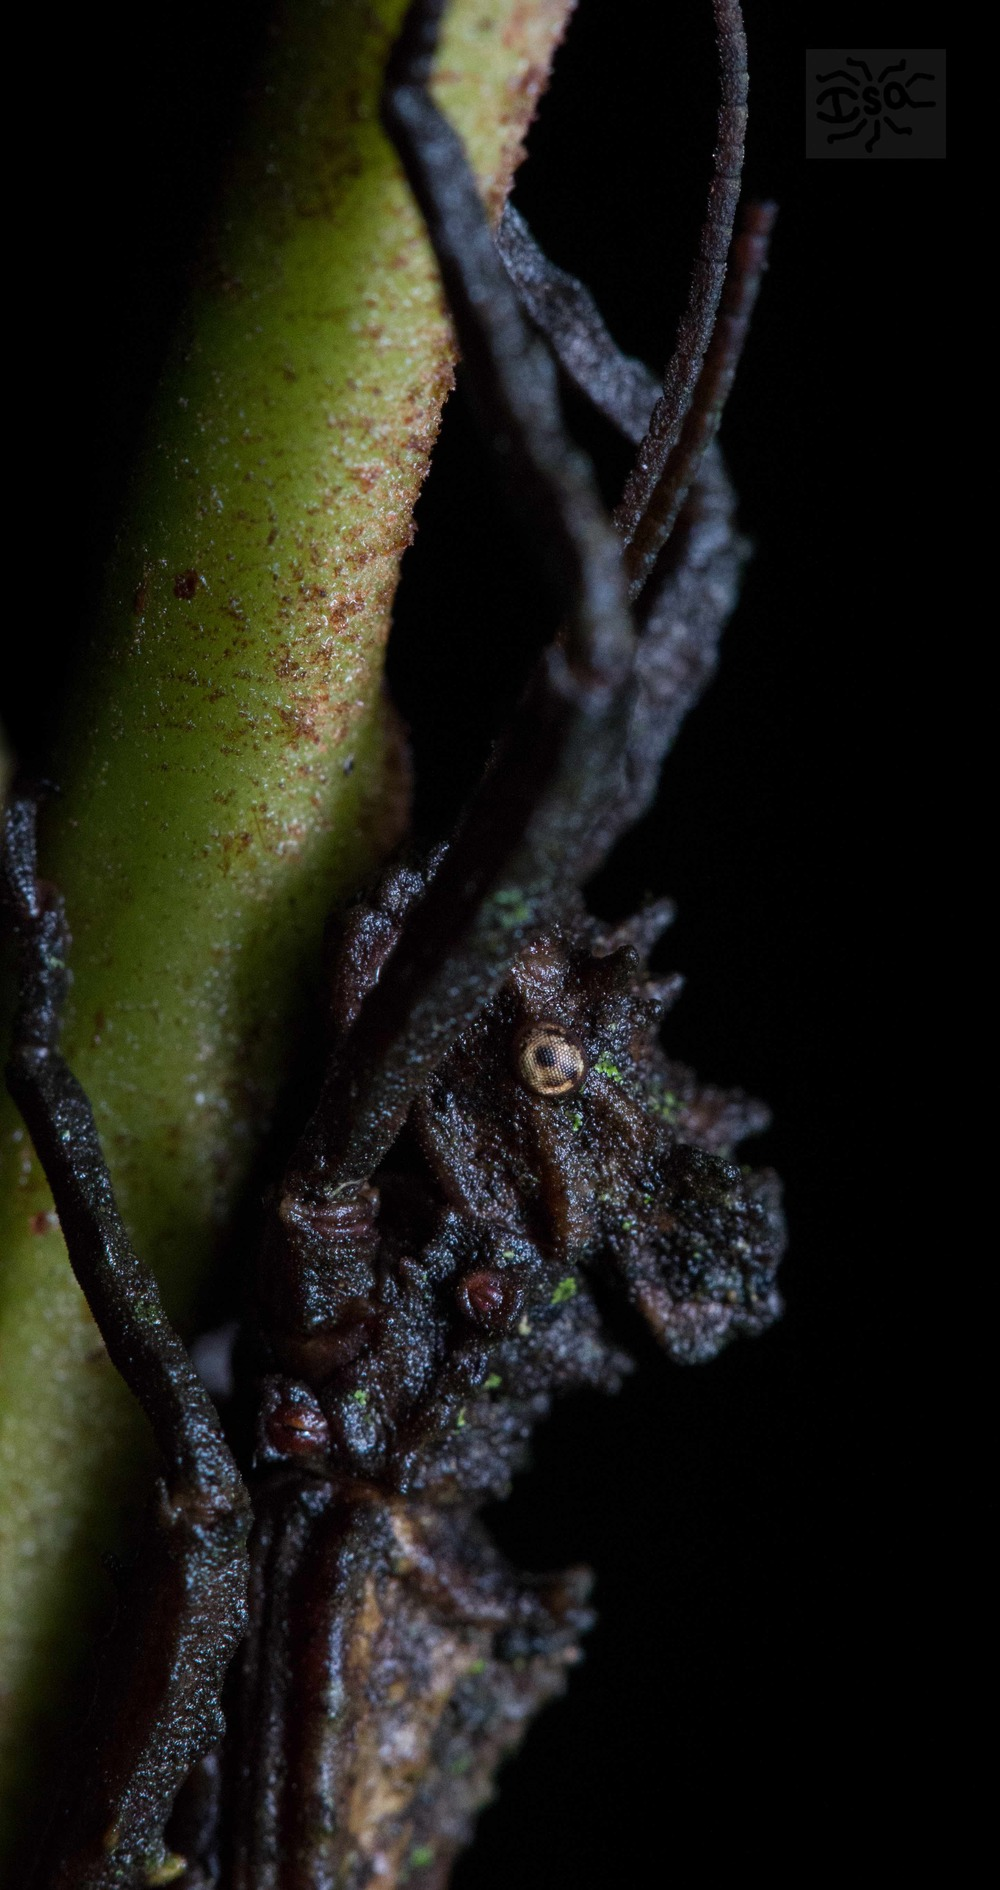 A walking stick insect [Phasmatodea] sits unmoving in the dark of night.